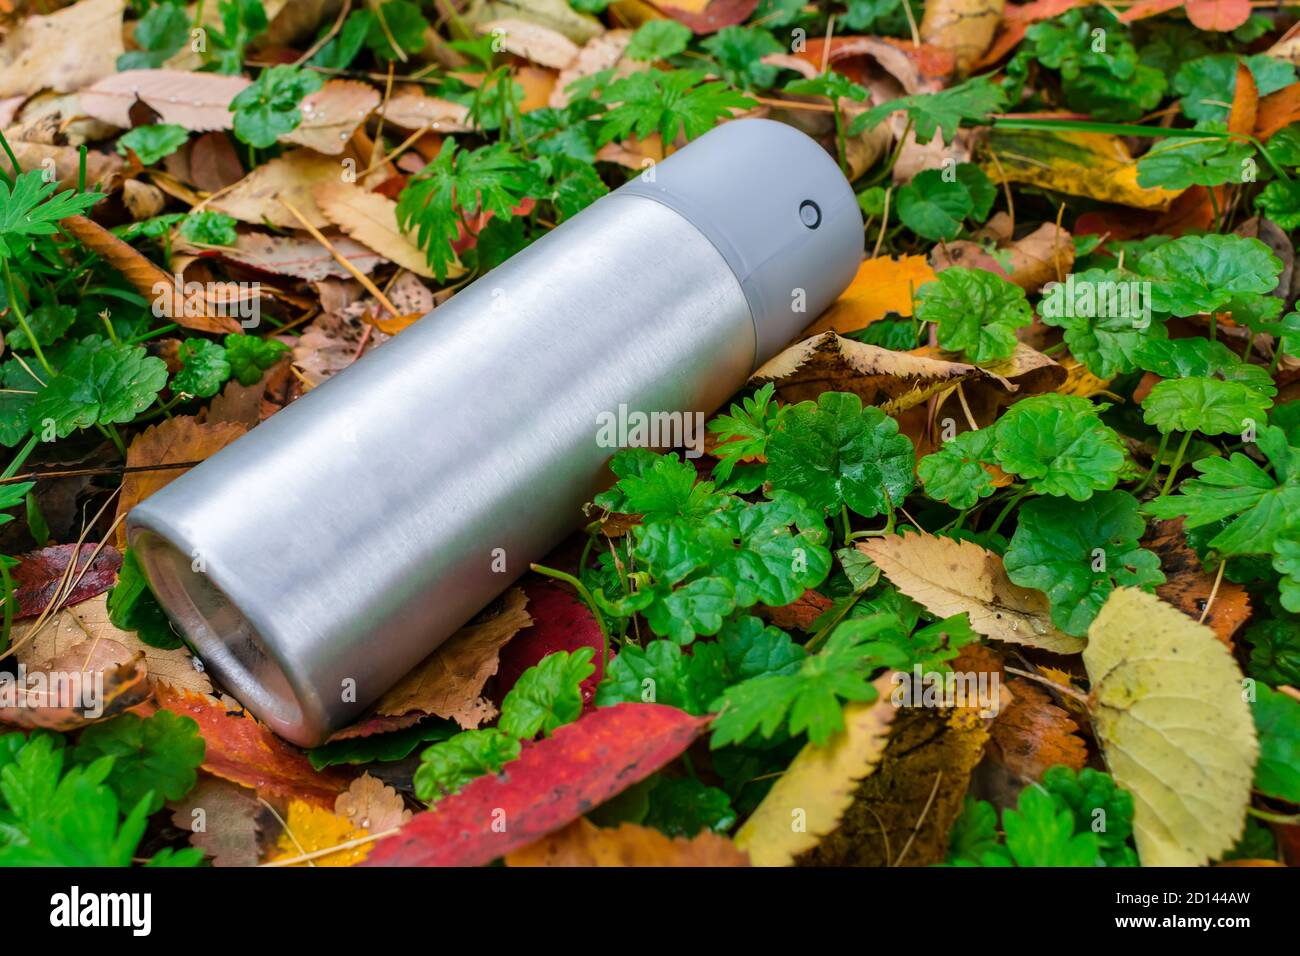 A deodorant thrown out on the lawn in an aluminum can lies on the grass with autumn leaves Stock Photo